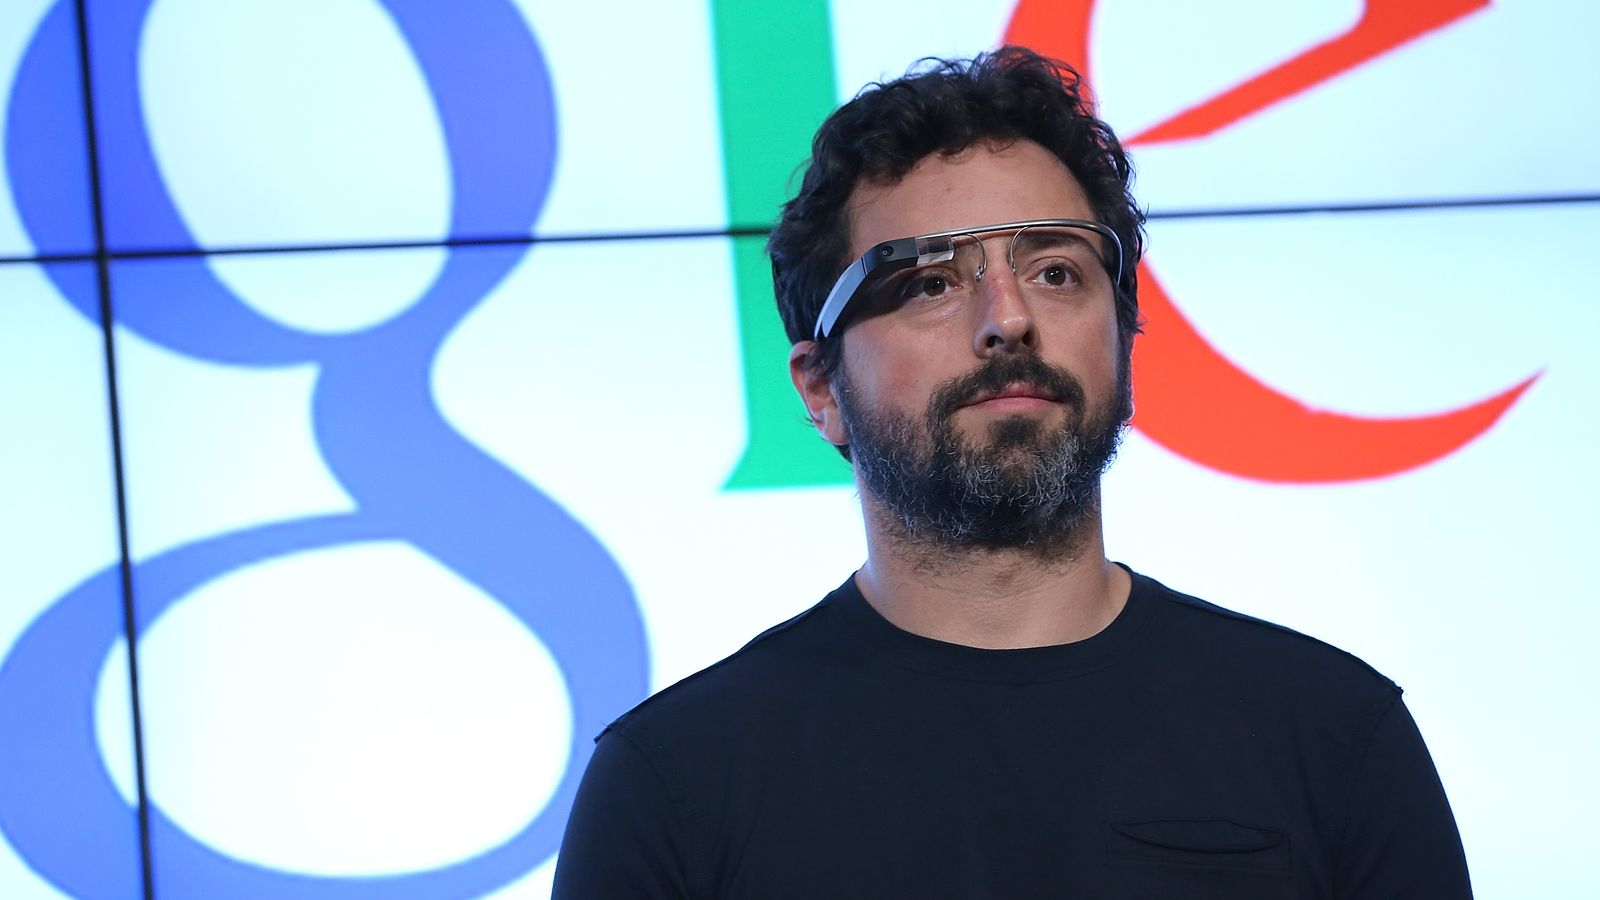 Google Co-founder Sergey Brin has been Instructed to Give a Deposition in Alphabet's Lawsuit Against Uber